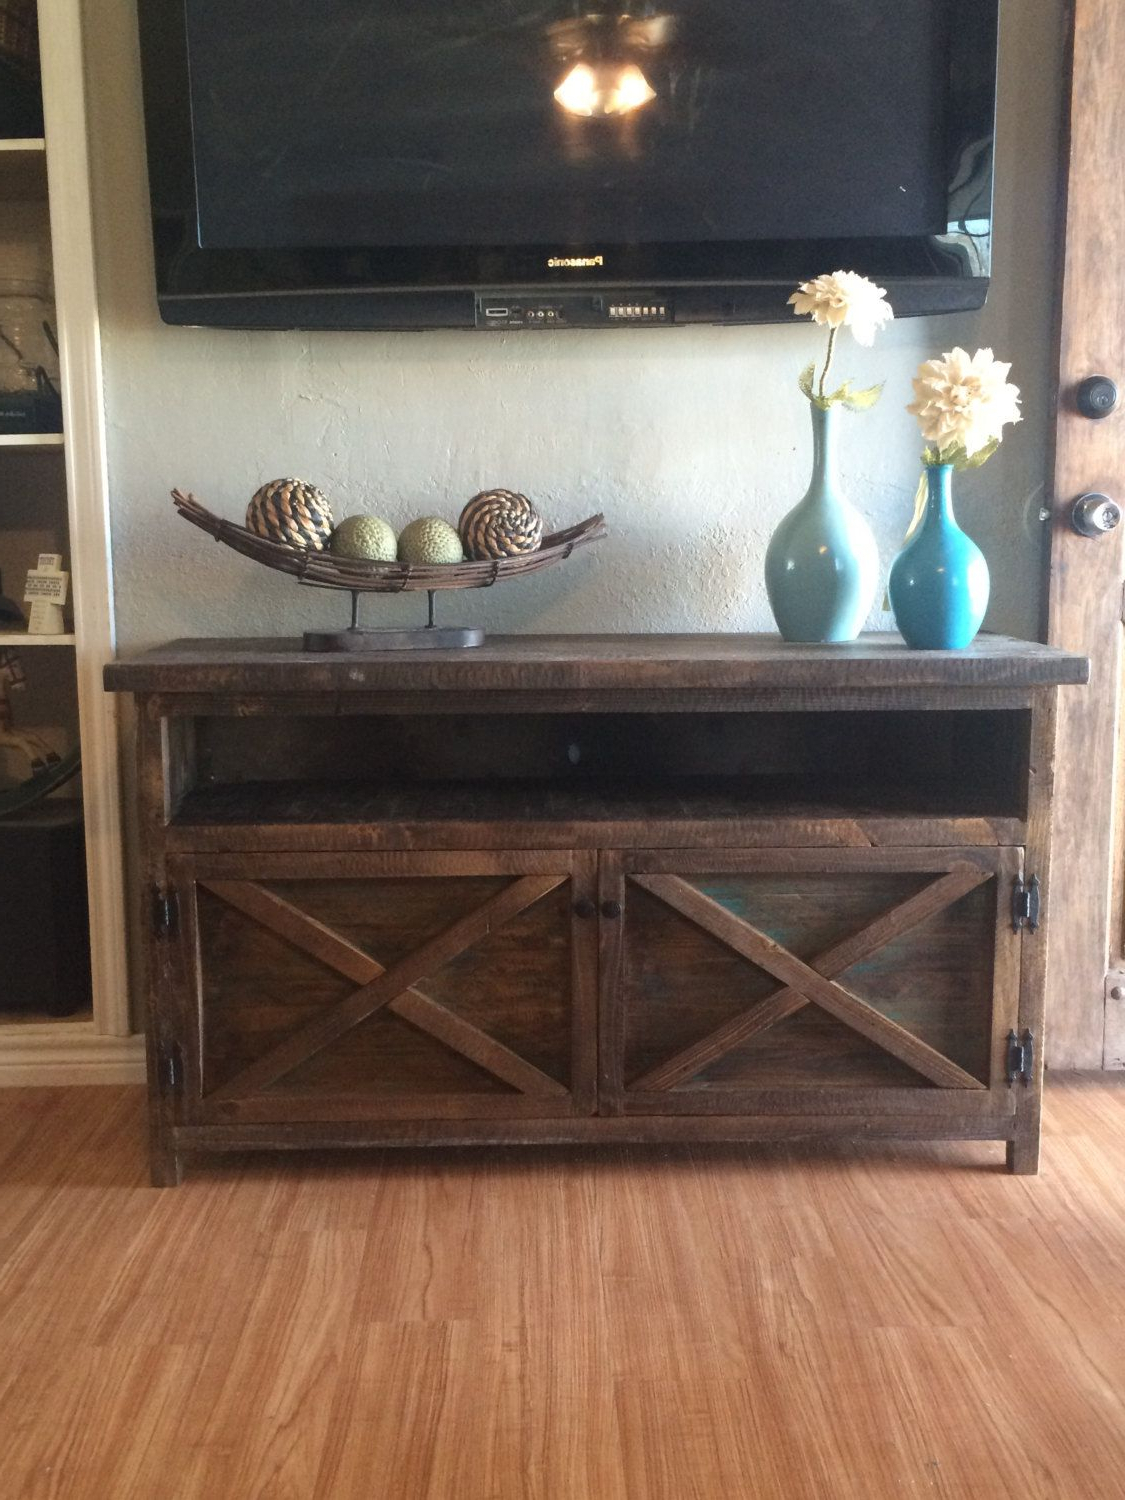 Best And Newest Rustic Tv Solid Wood Entry Way Tabletherusticmillhouse On Etsy Intended For Rustic Tv Stands (Gallery 16 of 20)